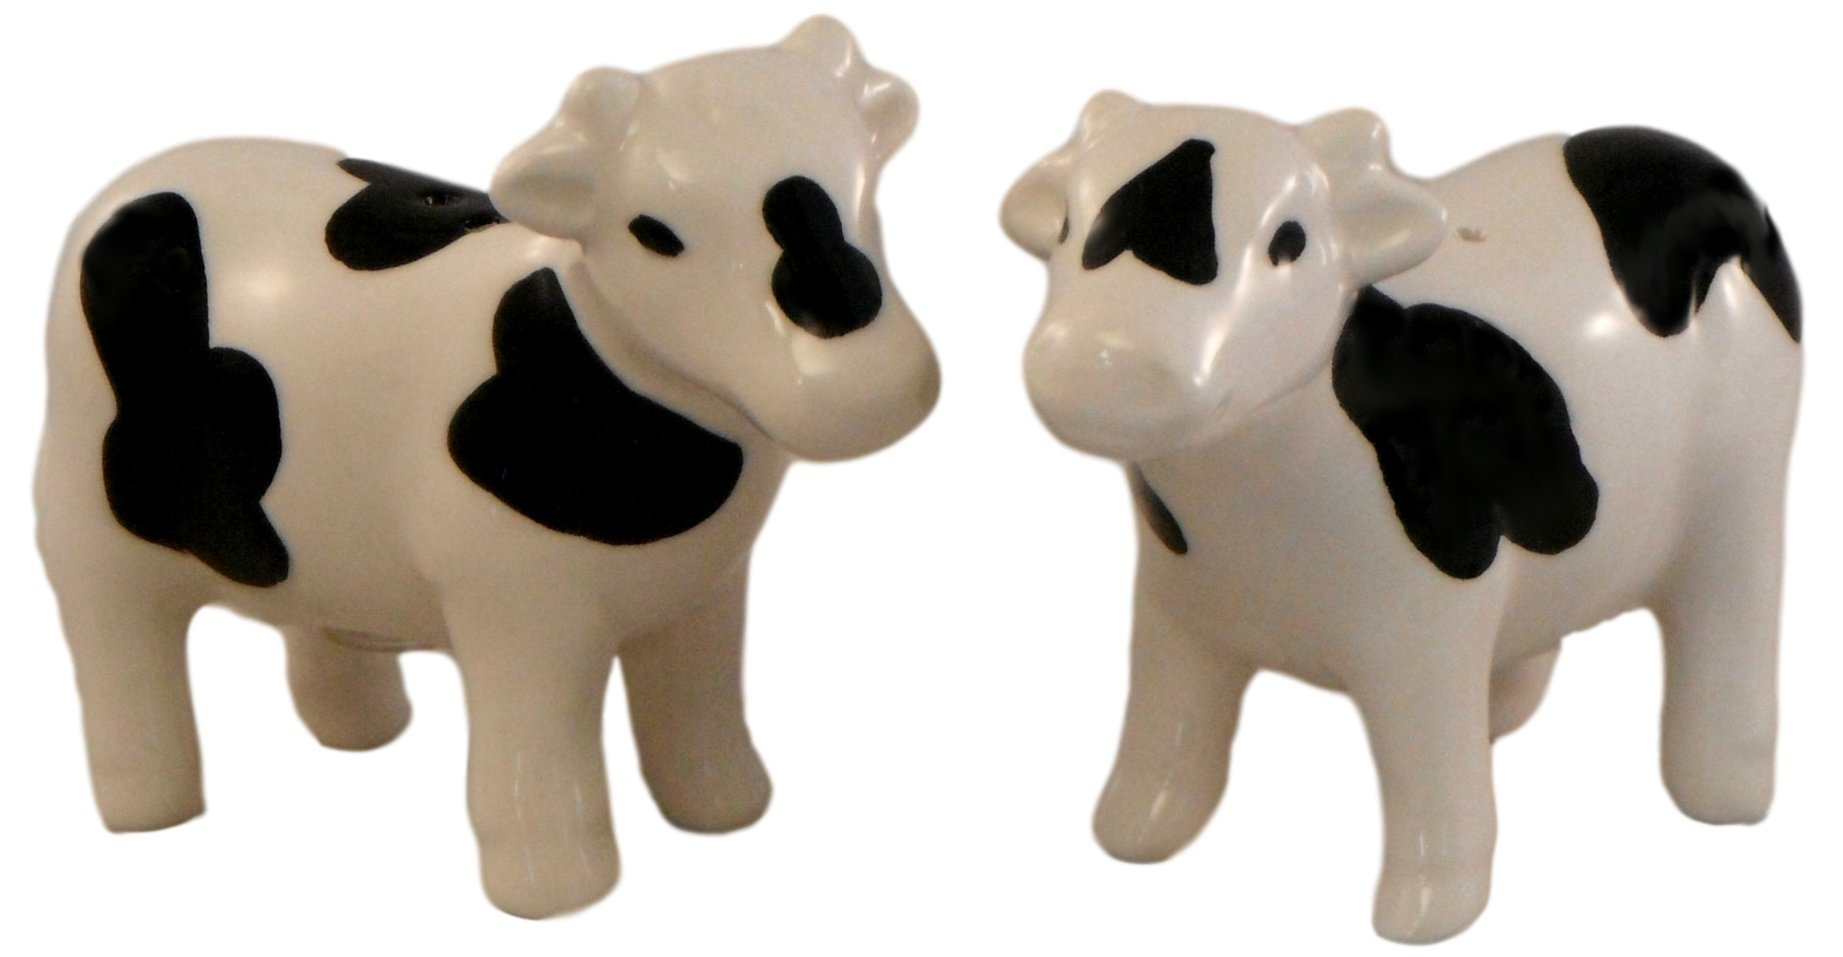 Ceramic Salt and Pepper Shakers - Black and White Cows